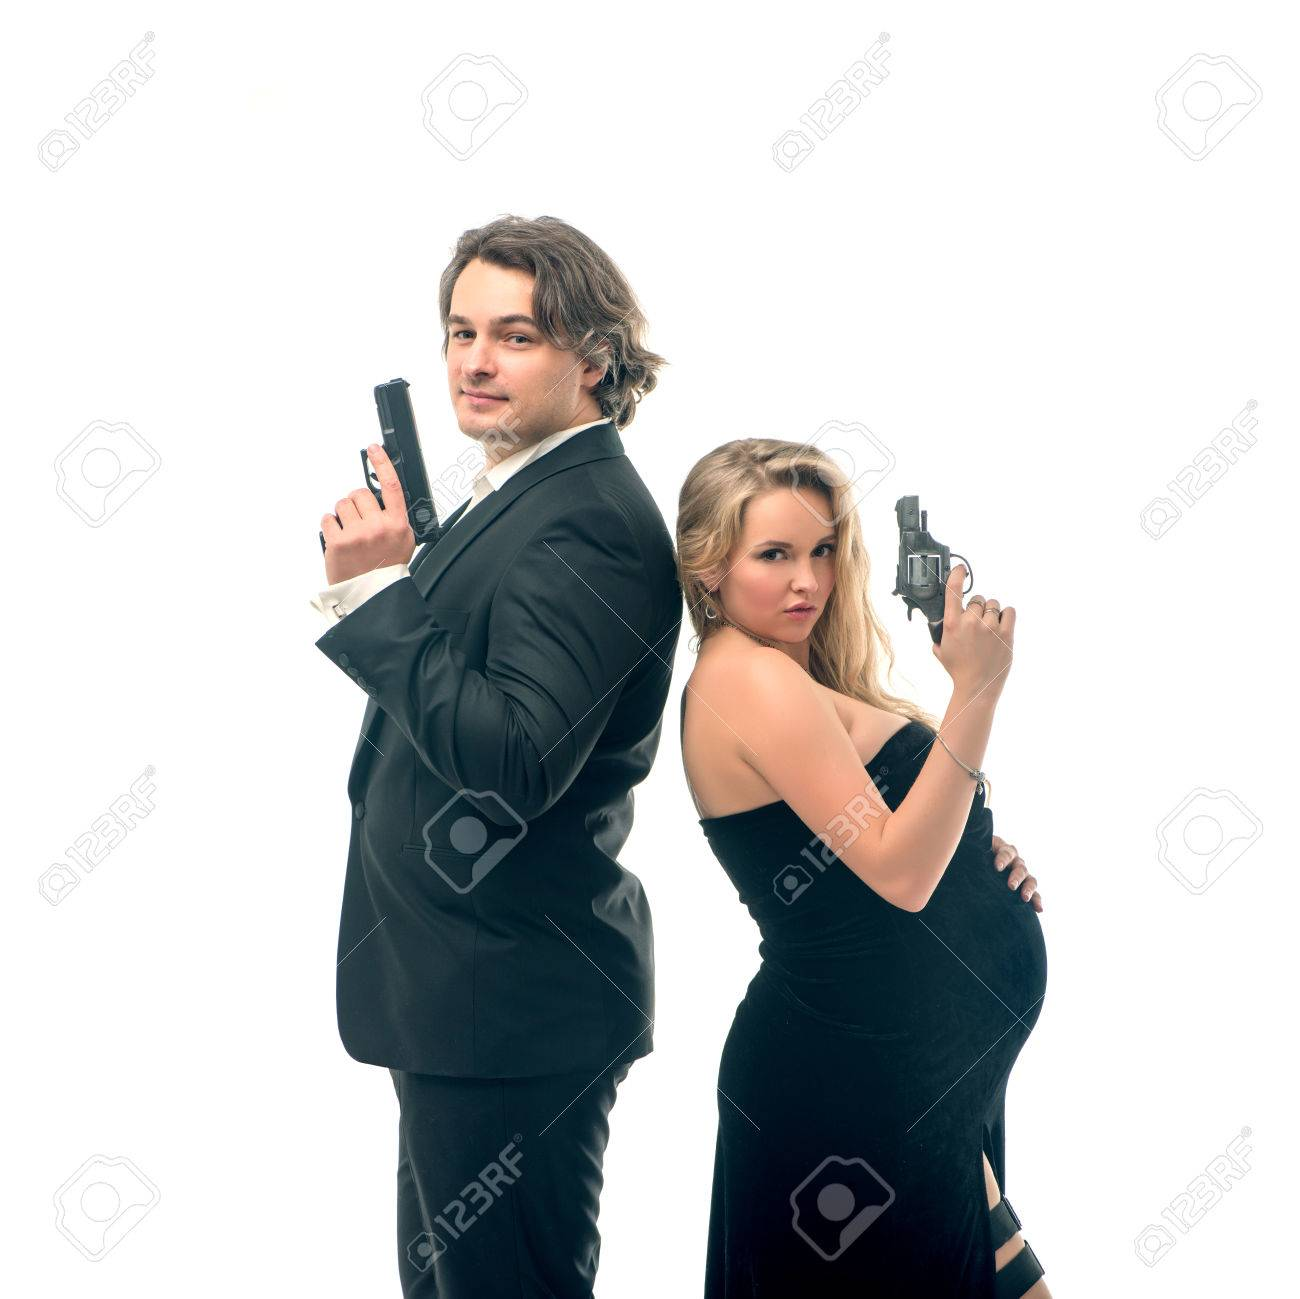 Pregnant fashion woman and husband in gangsta style in mr and